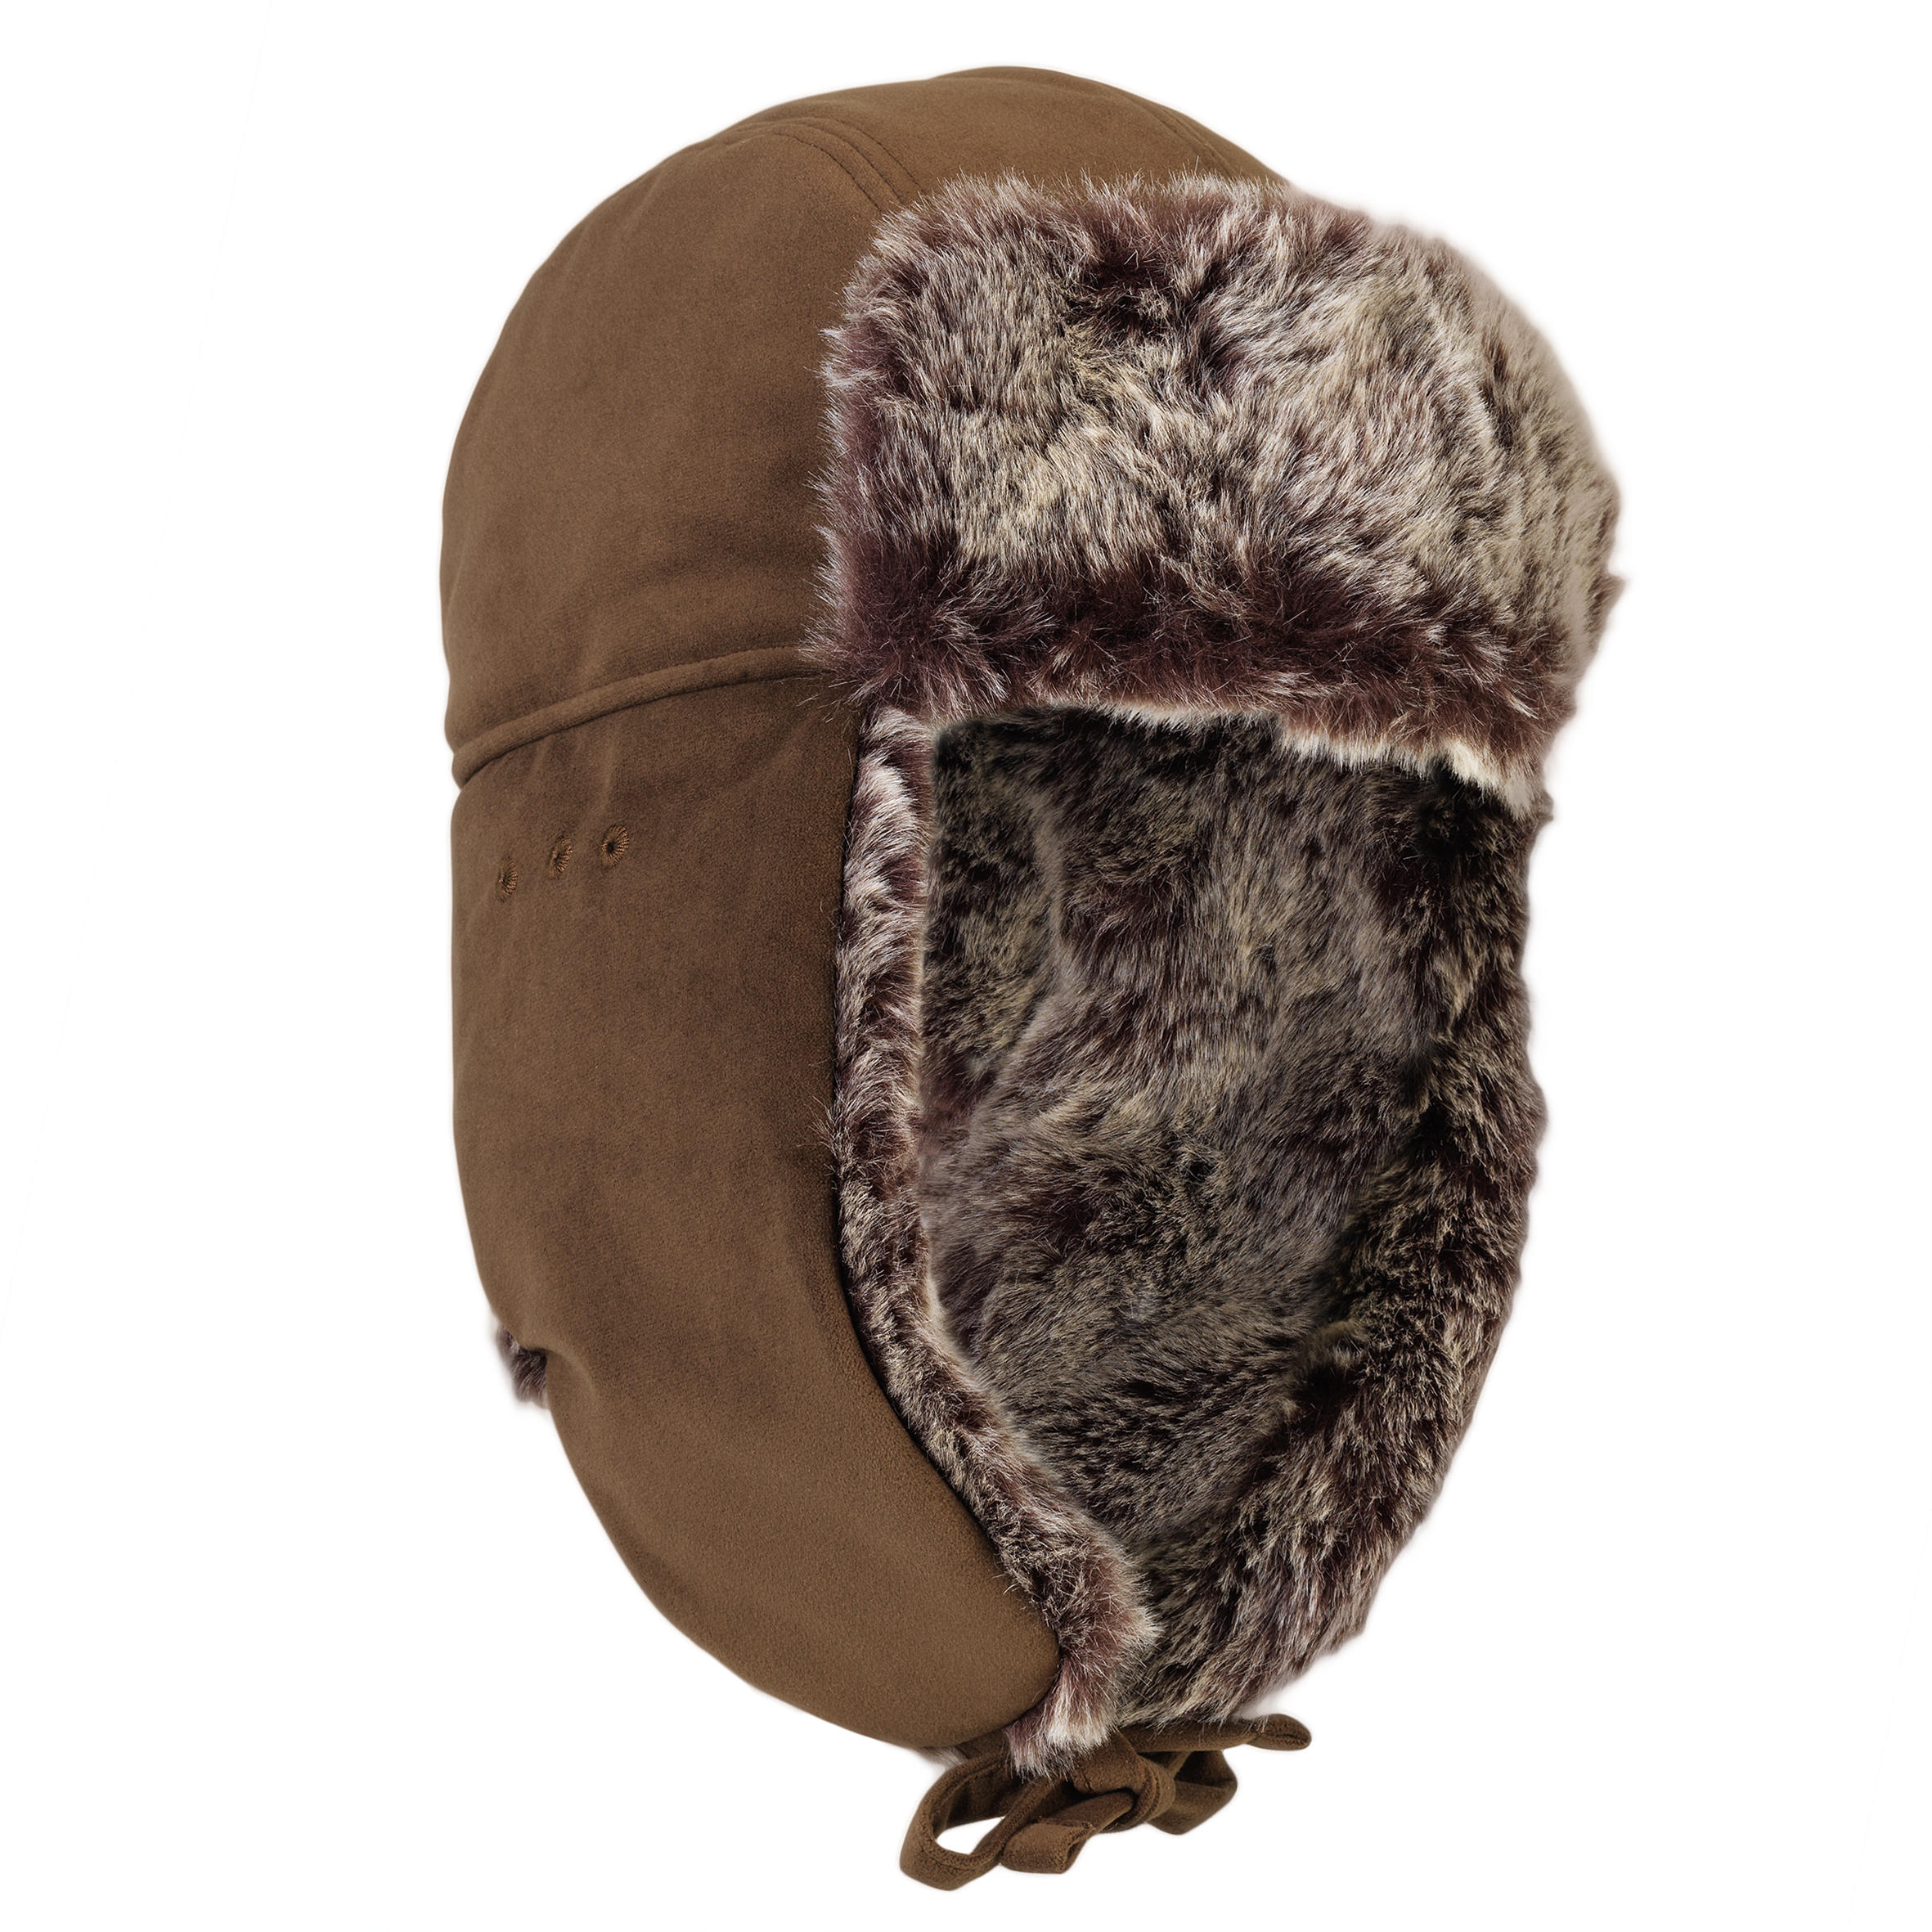 Toundra 500 Faux Fur Hunting Hat - Brown